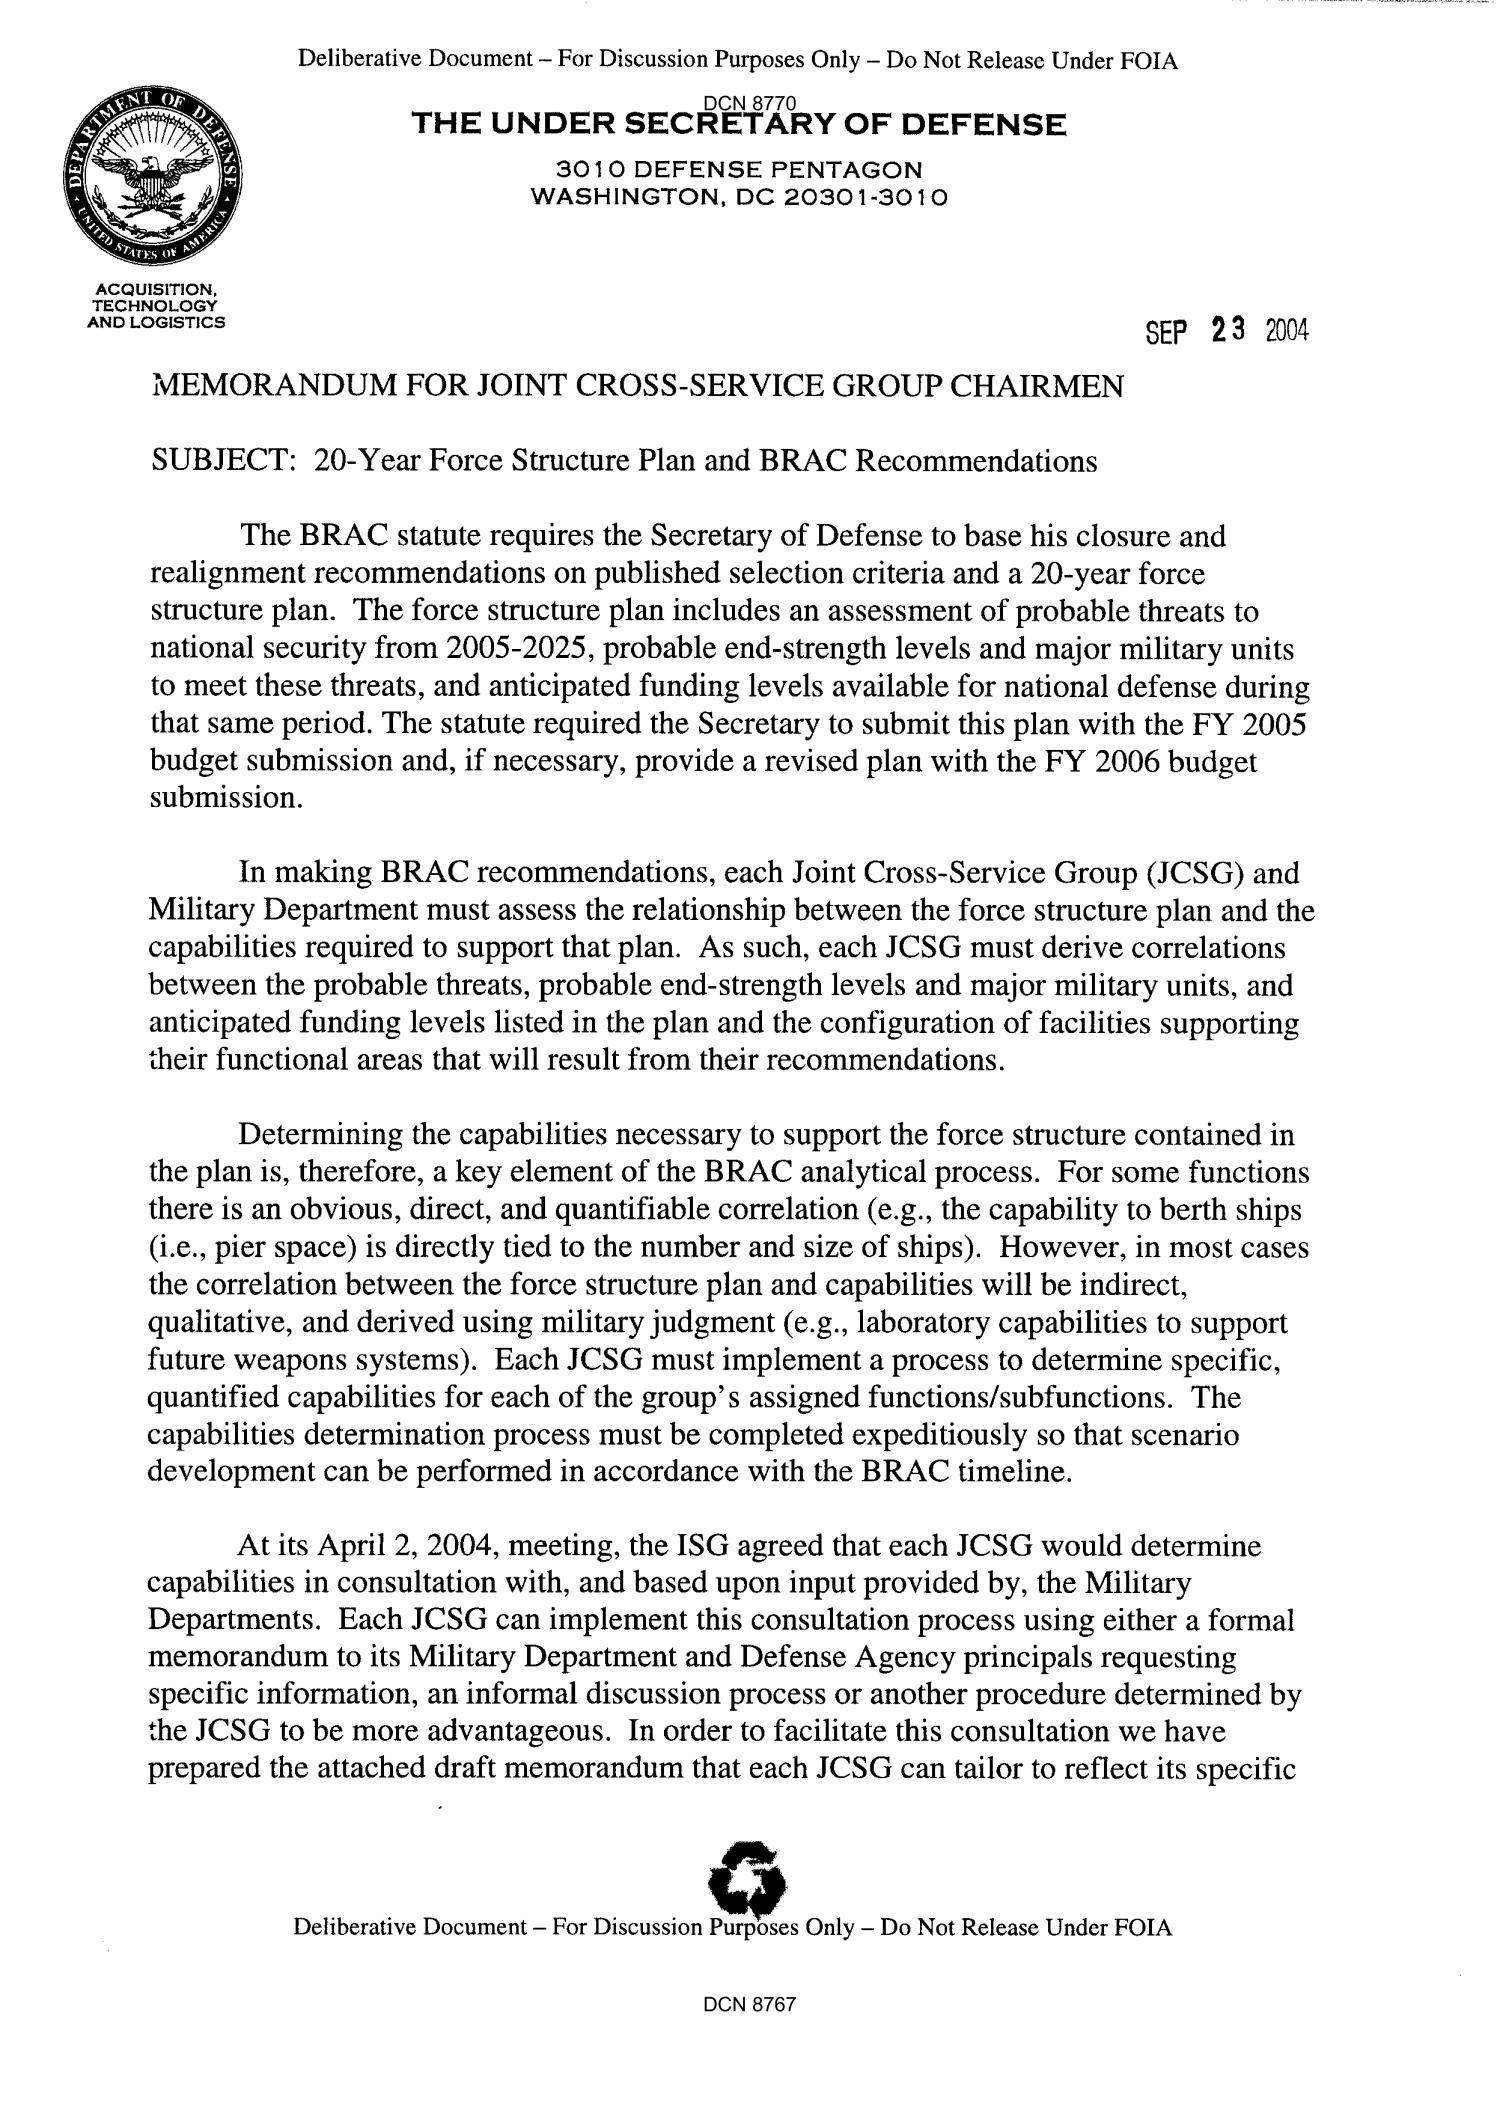 Dept of the Army Force Structure  Memo 20Year Force